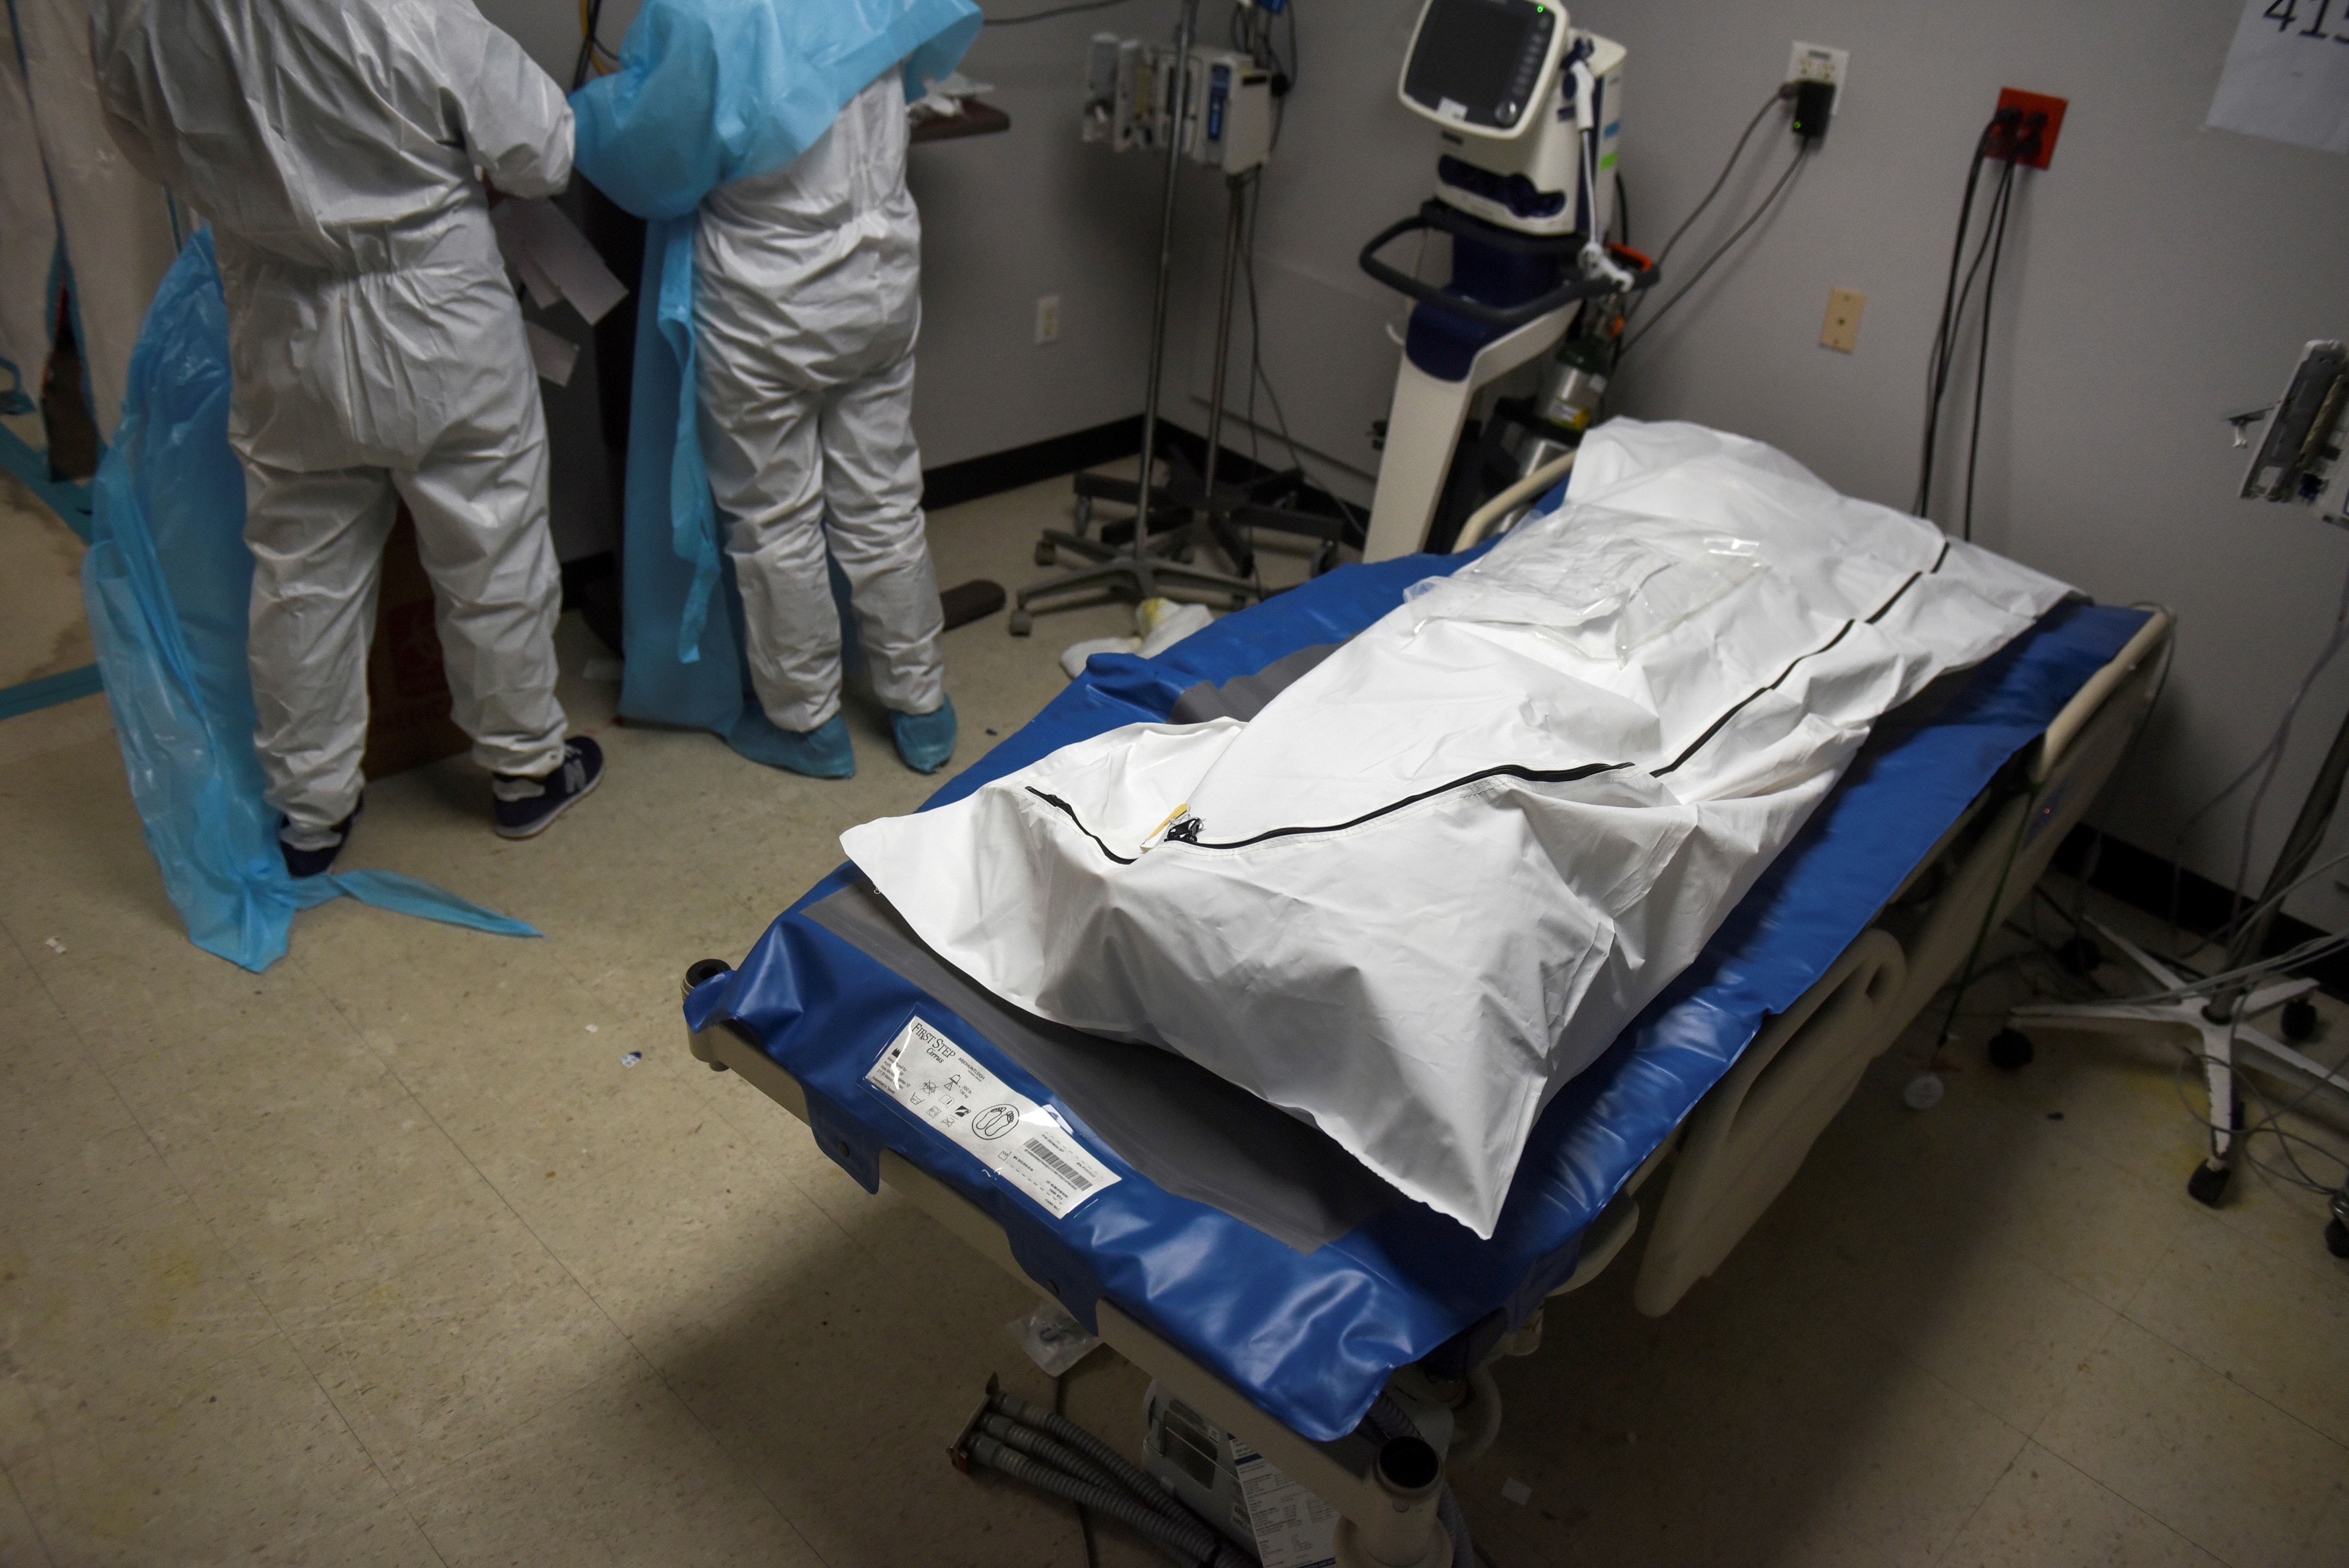 A patient who died lays in a body bag inside a coronavirus disease (COVID-19) unit at United Memorial Medical Center as the United States nears 300,000 COVID-19 deaths, in Houston, Texas, U.S., December 12, 2020. REUTERS/Callaghan O'Hare/File Photo